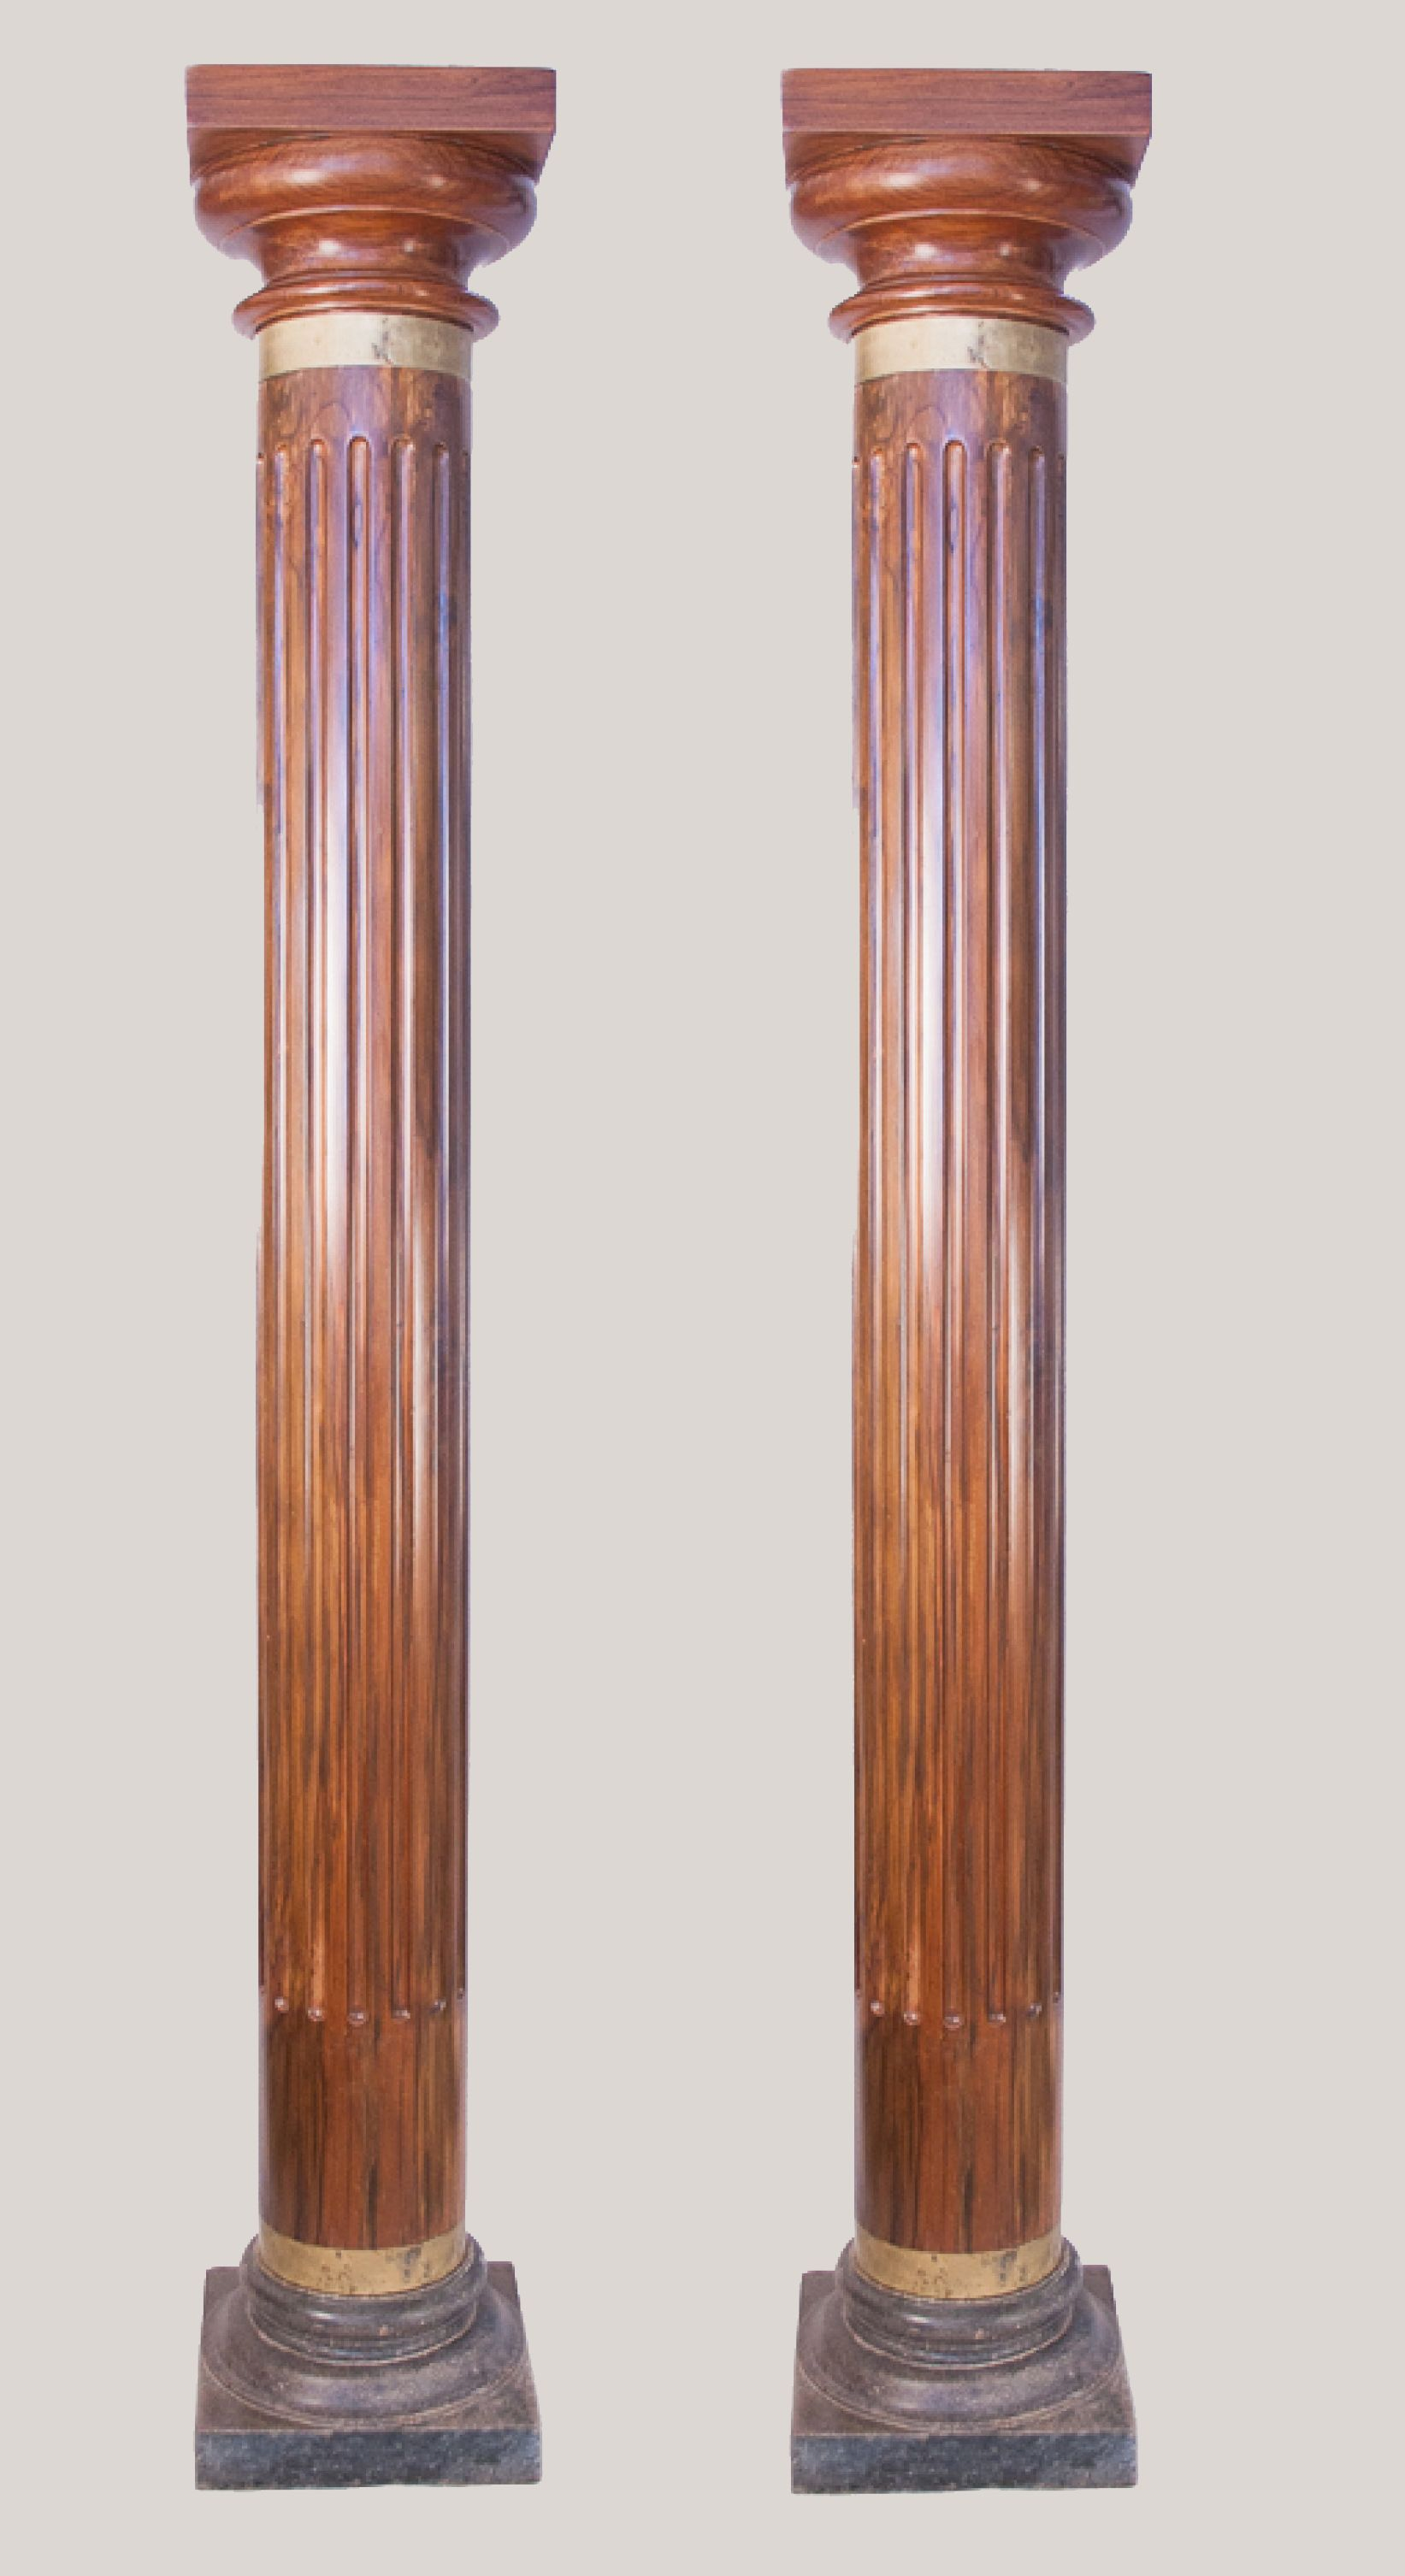 Antique Wood Reeded Doric Columns Or Pillars  Fair Trade. Circus Circus Reno Rooms. Decorative Tin Sheets. Pete The Cat Classroom Decor. Decorating Ideas For Church Events. Decorative Wall Mirrors For Living Room. Ikea Sewing Room. Jcpenney Living Room Furniture. Cost Of Shower Room